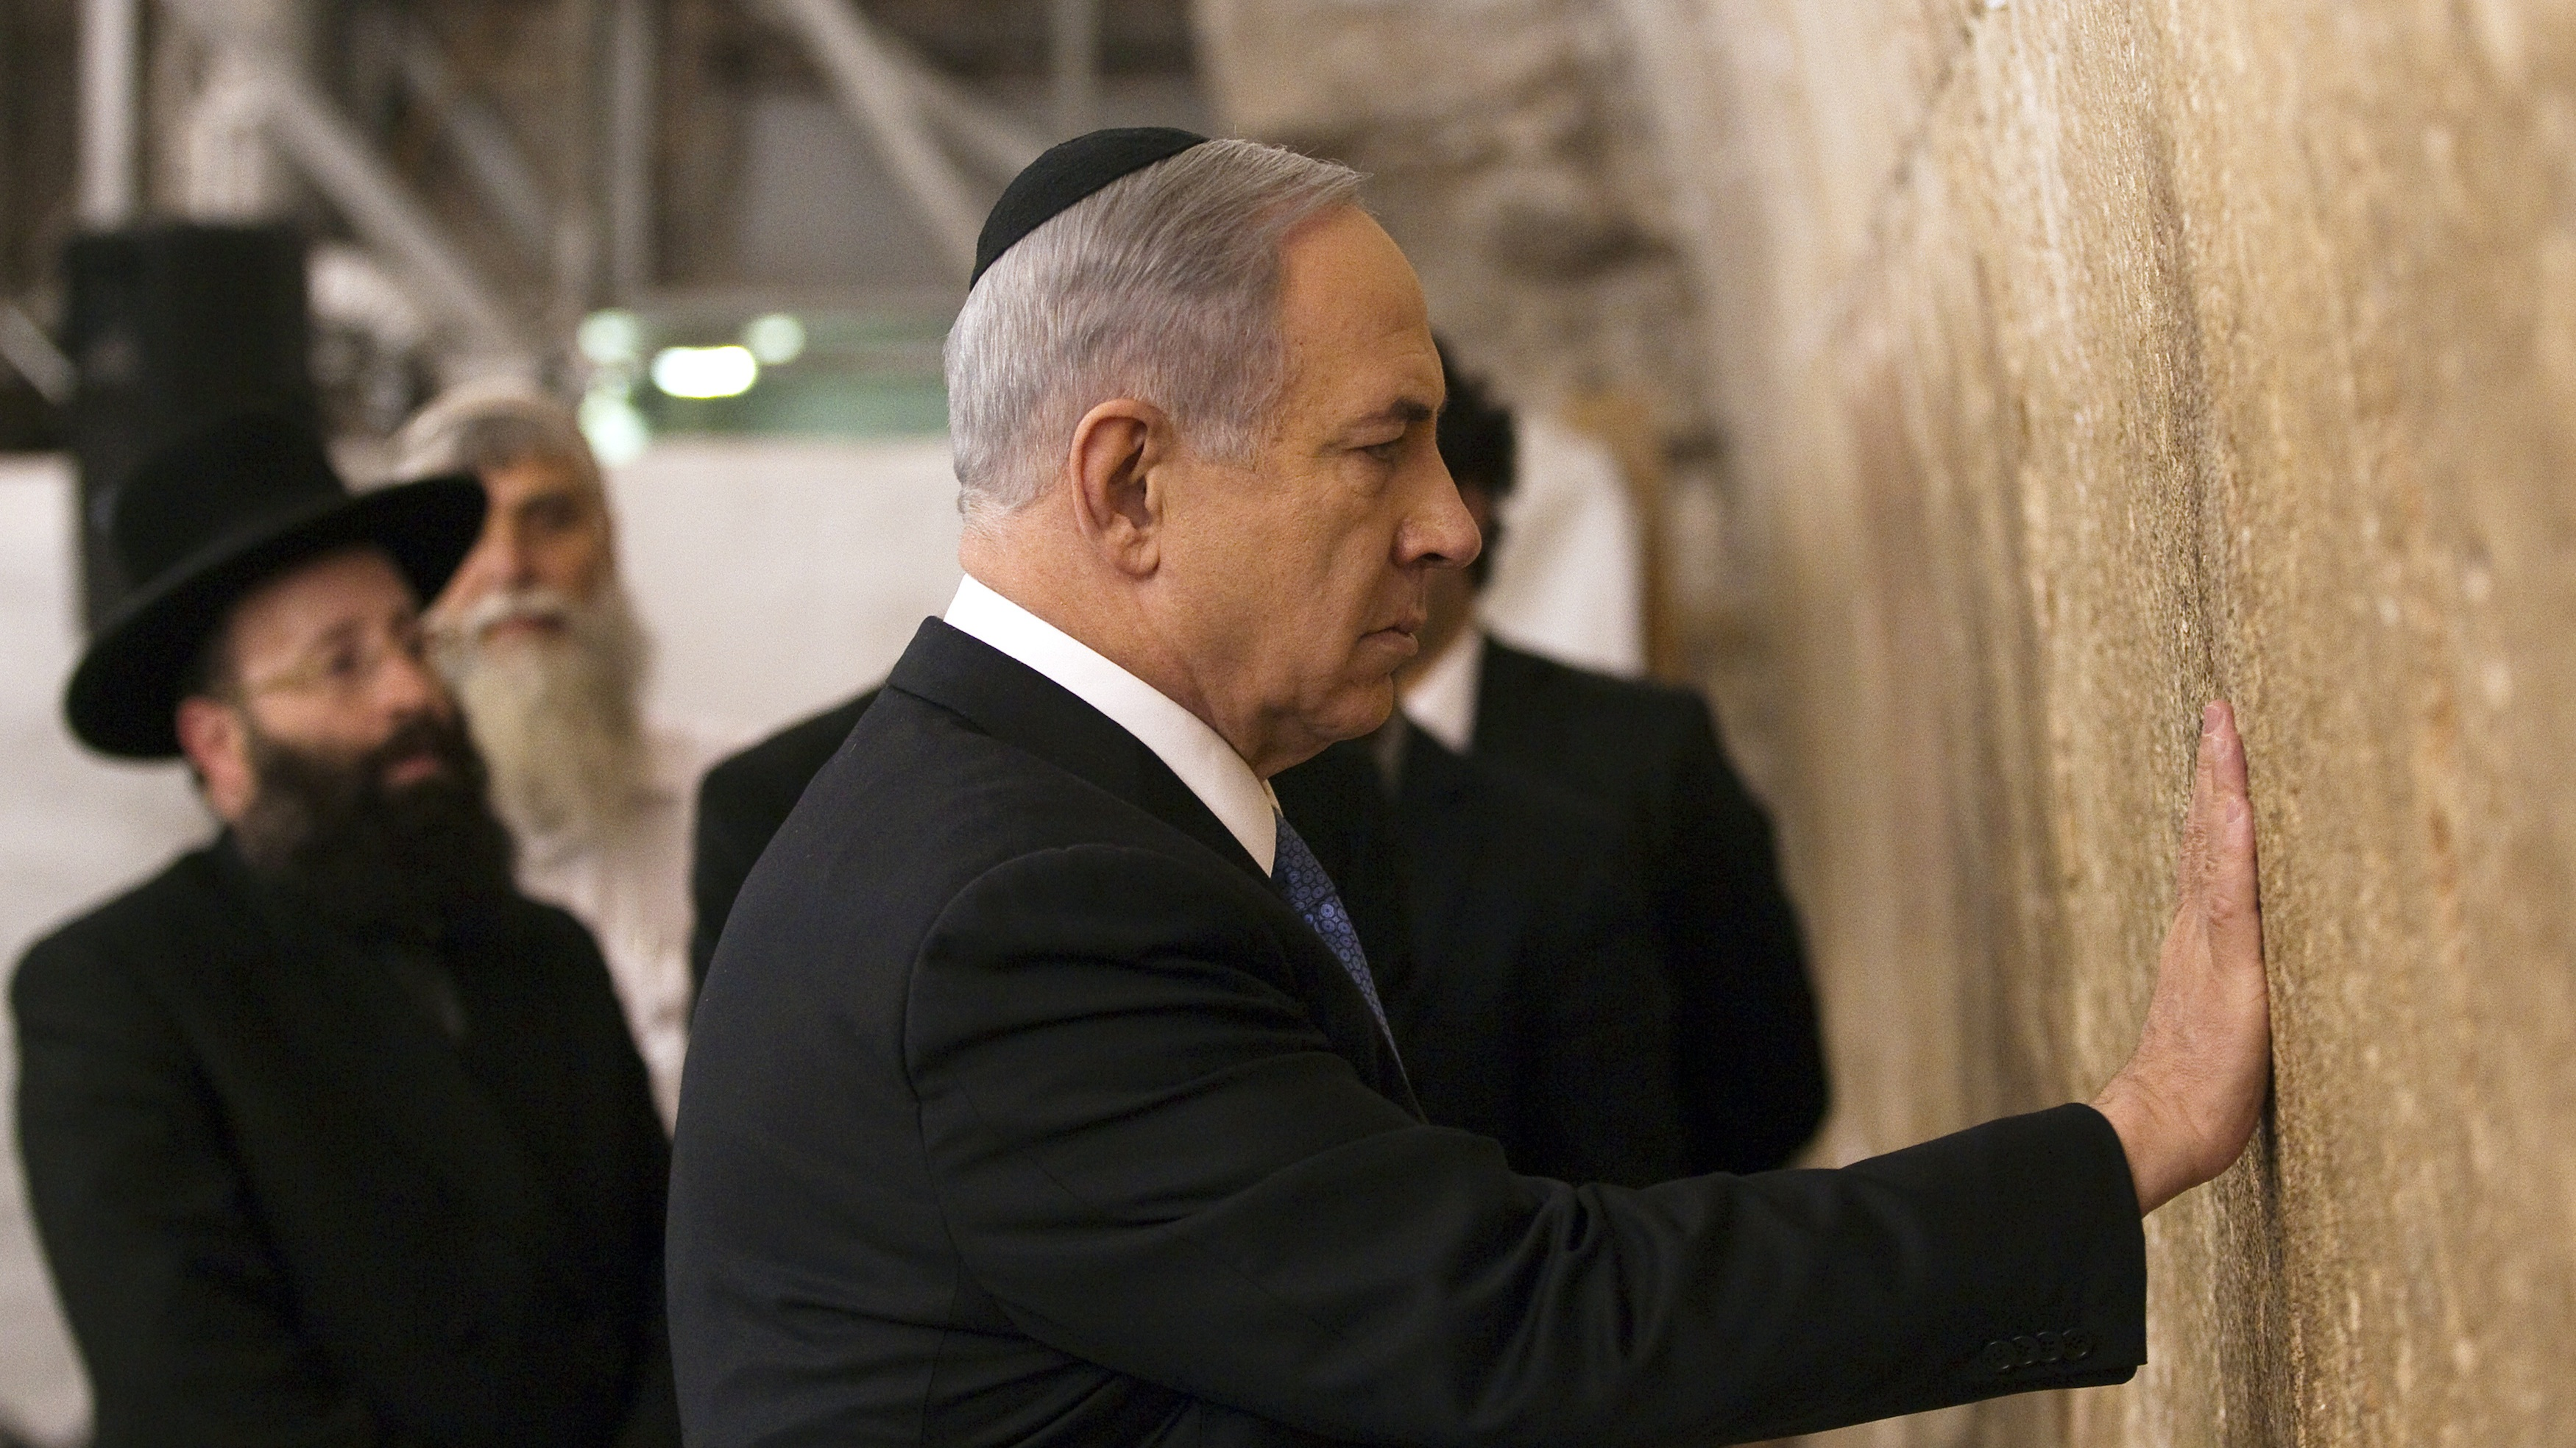 Israel's Prime Minister Benjamin Netanyahu touches the stones of the Western Wall, Judaism's holiest prayer site, in Jerusalem's Old City a day after winning Israel's election for prime minister.